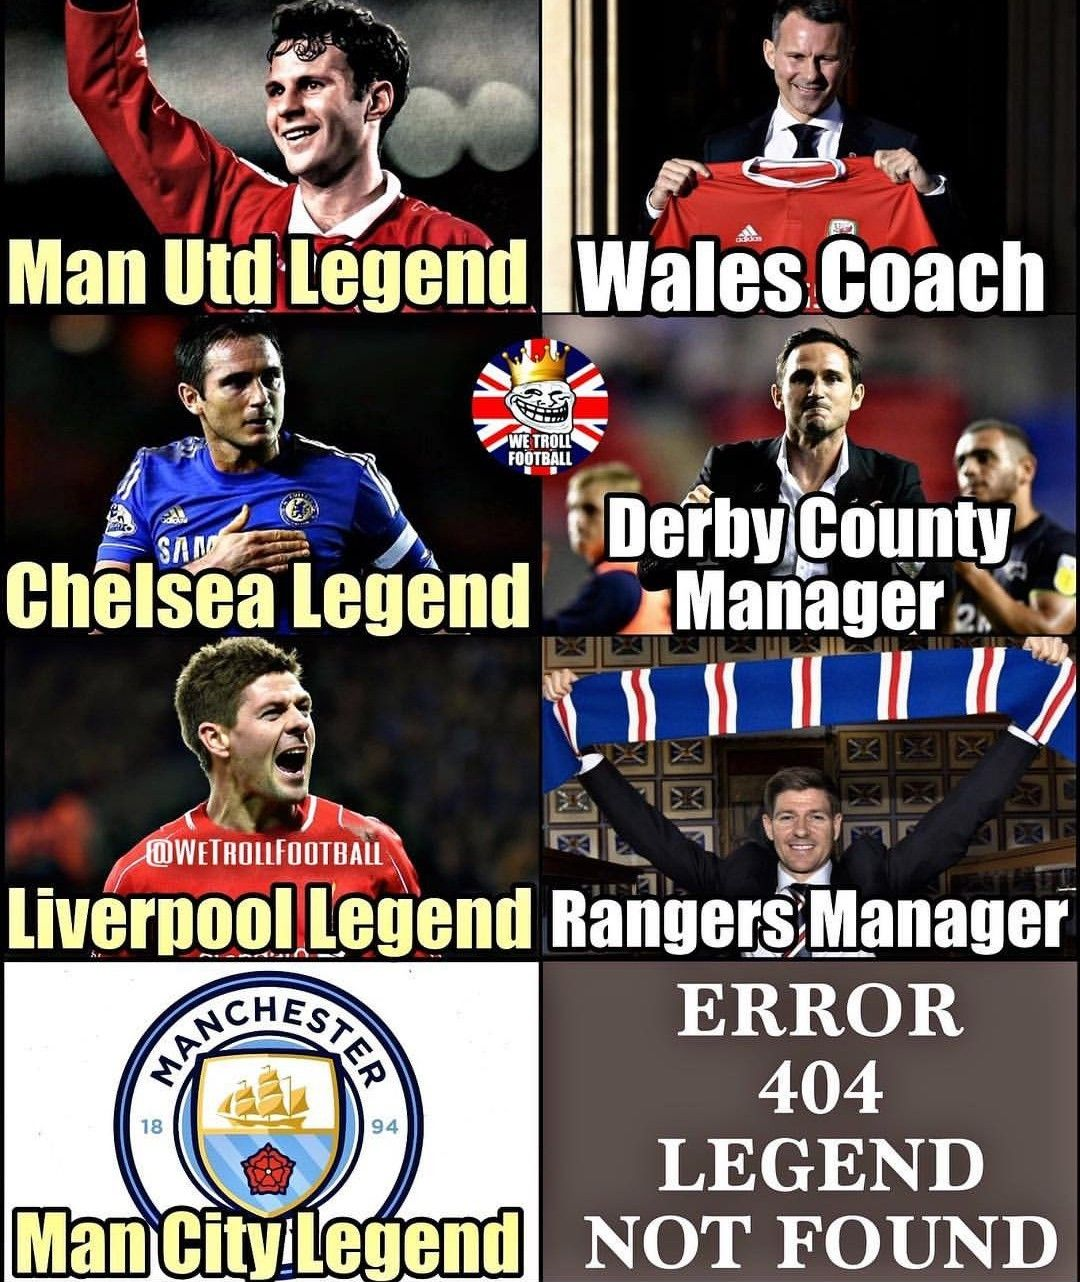 ManchesterCity 😂😂😂 Liverpool legends, Derby county